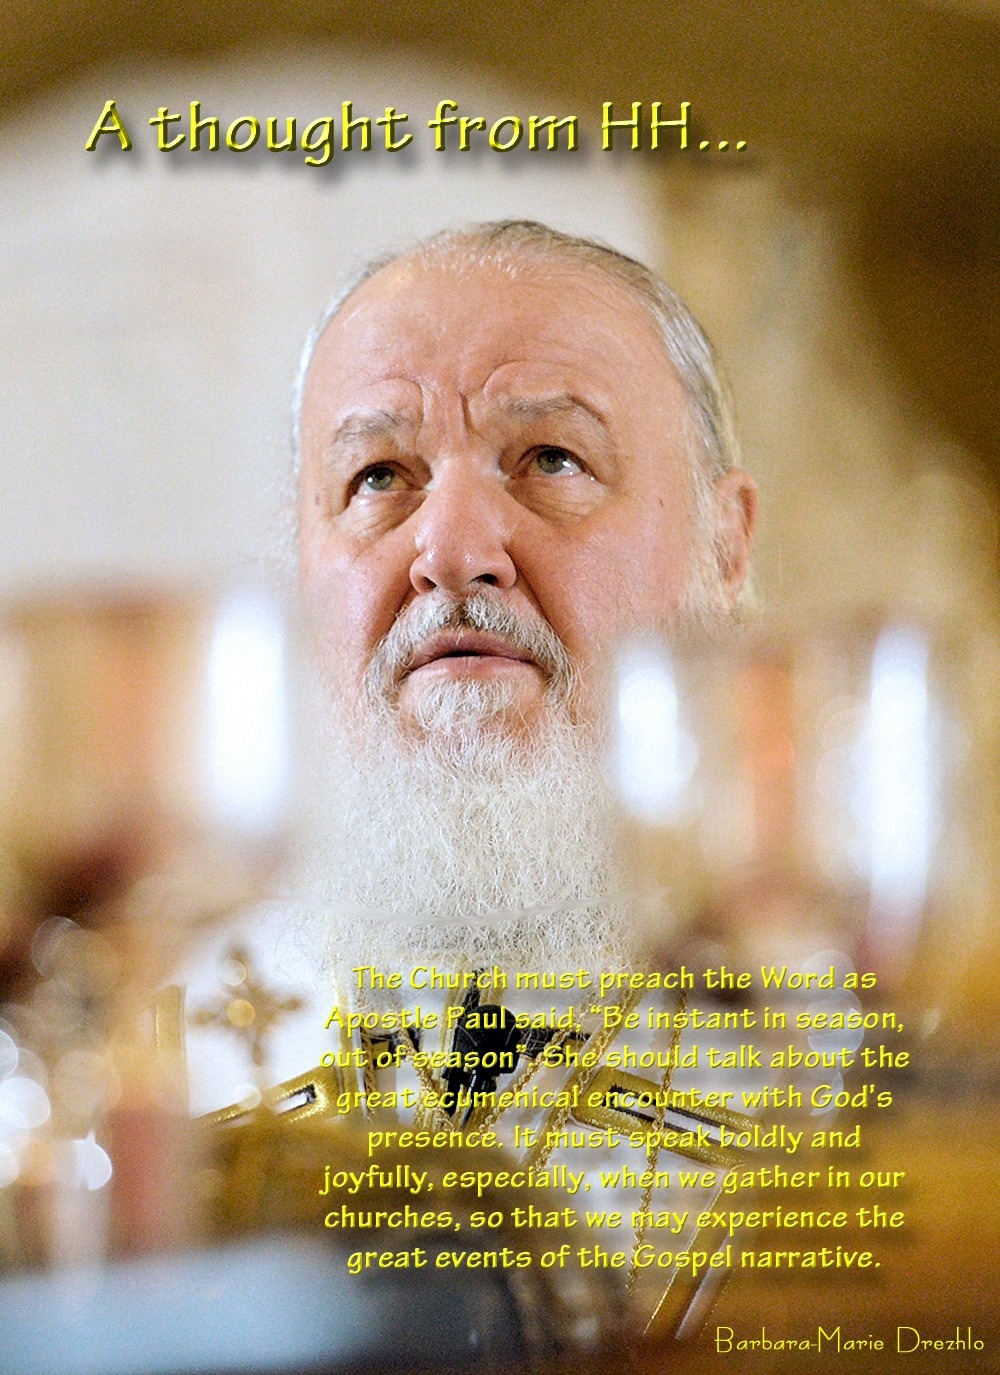 00 A Thought from HH. Patriarch Kirill of Moscow. 12.10.13